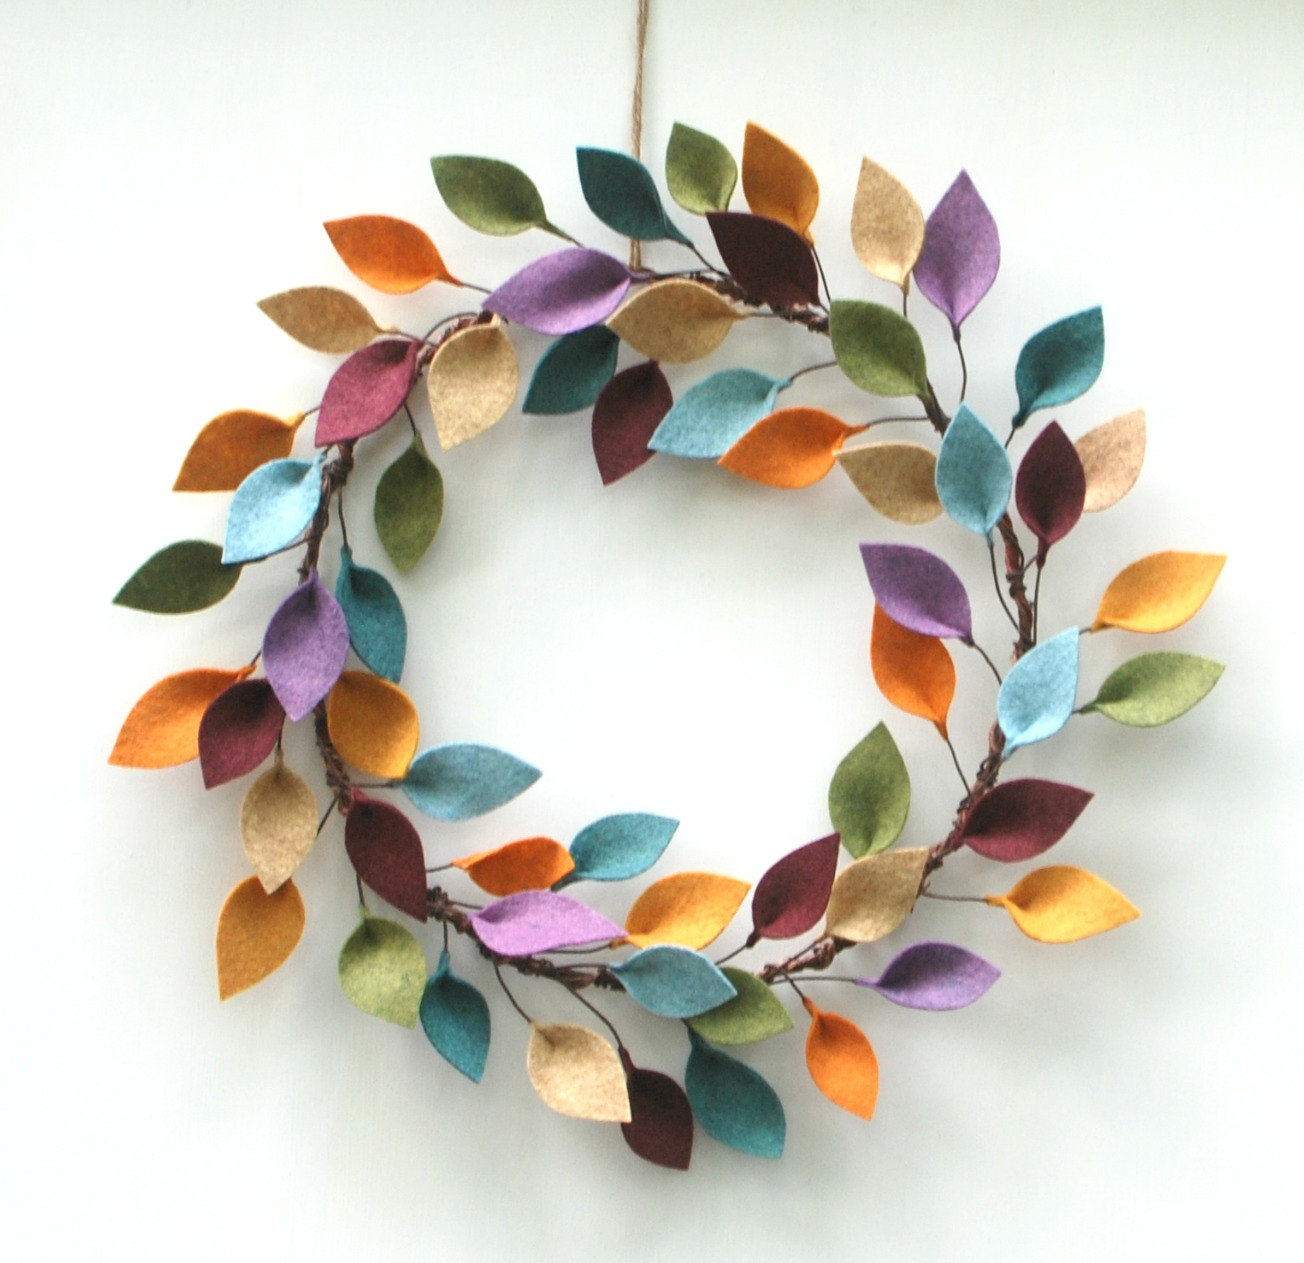 Modern Felt Autumn Leaves by Curious Bloom